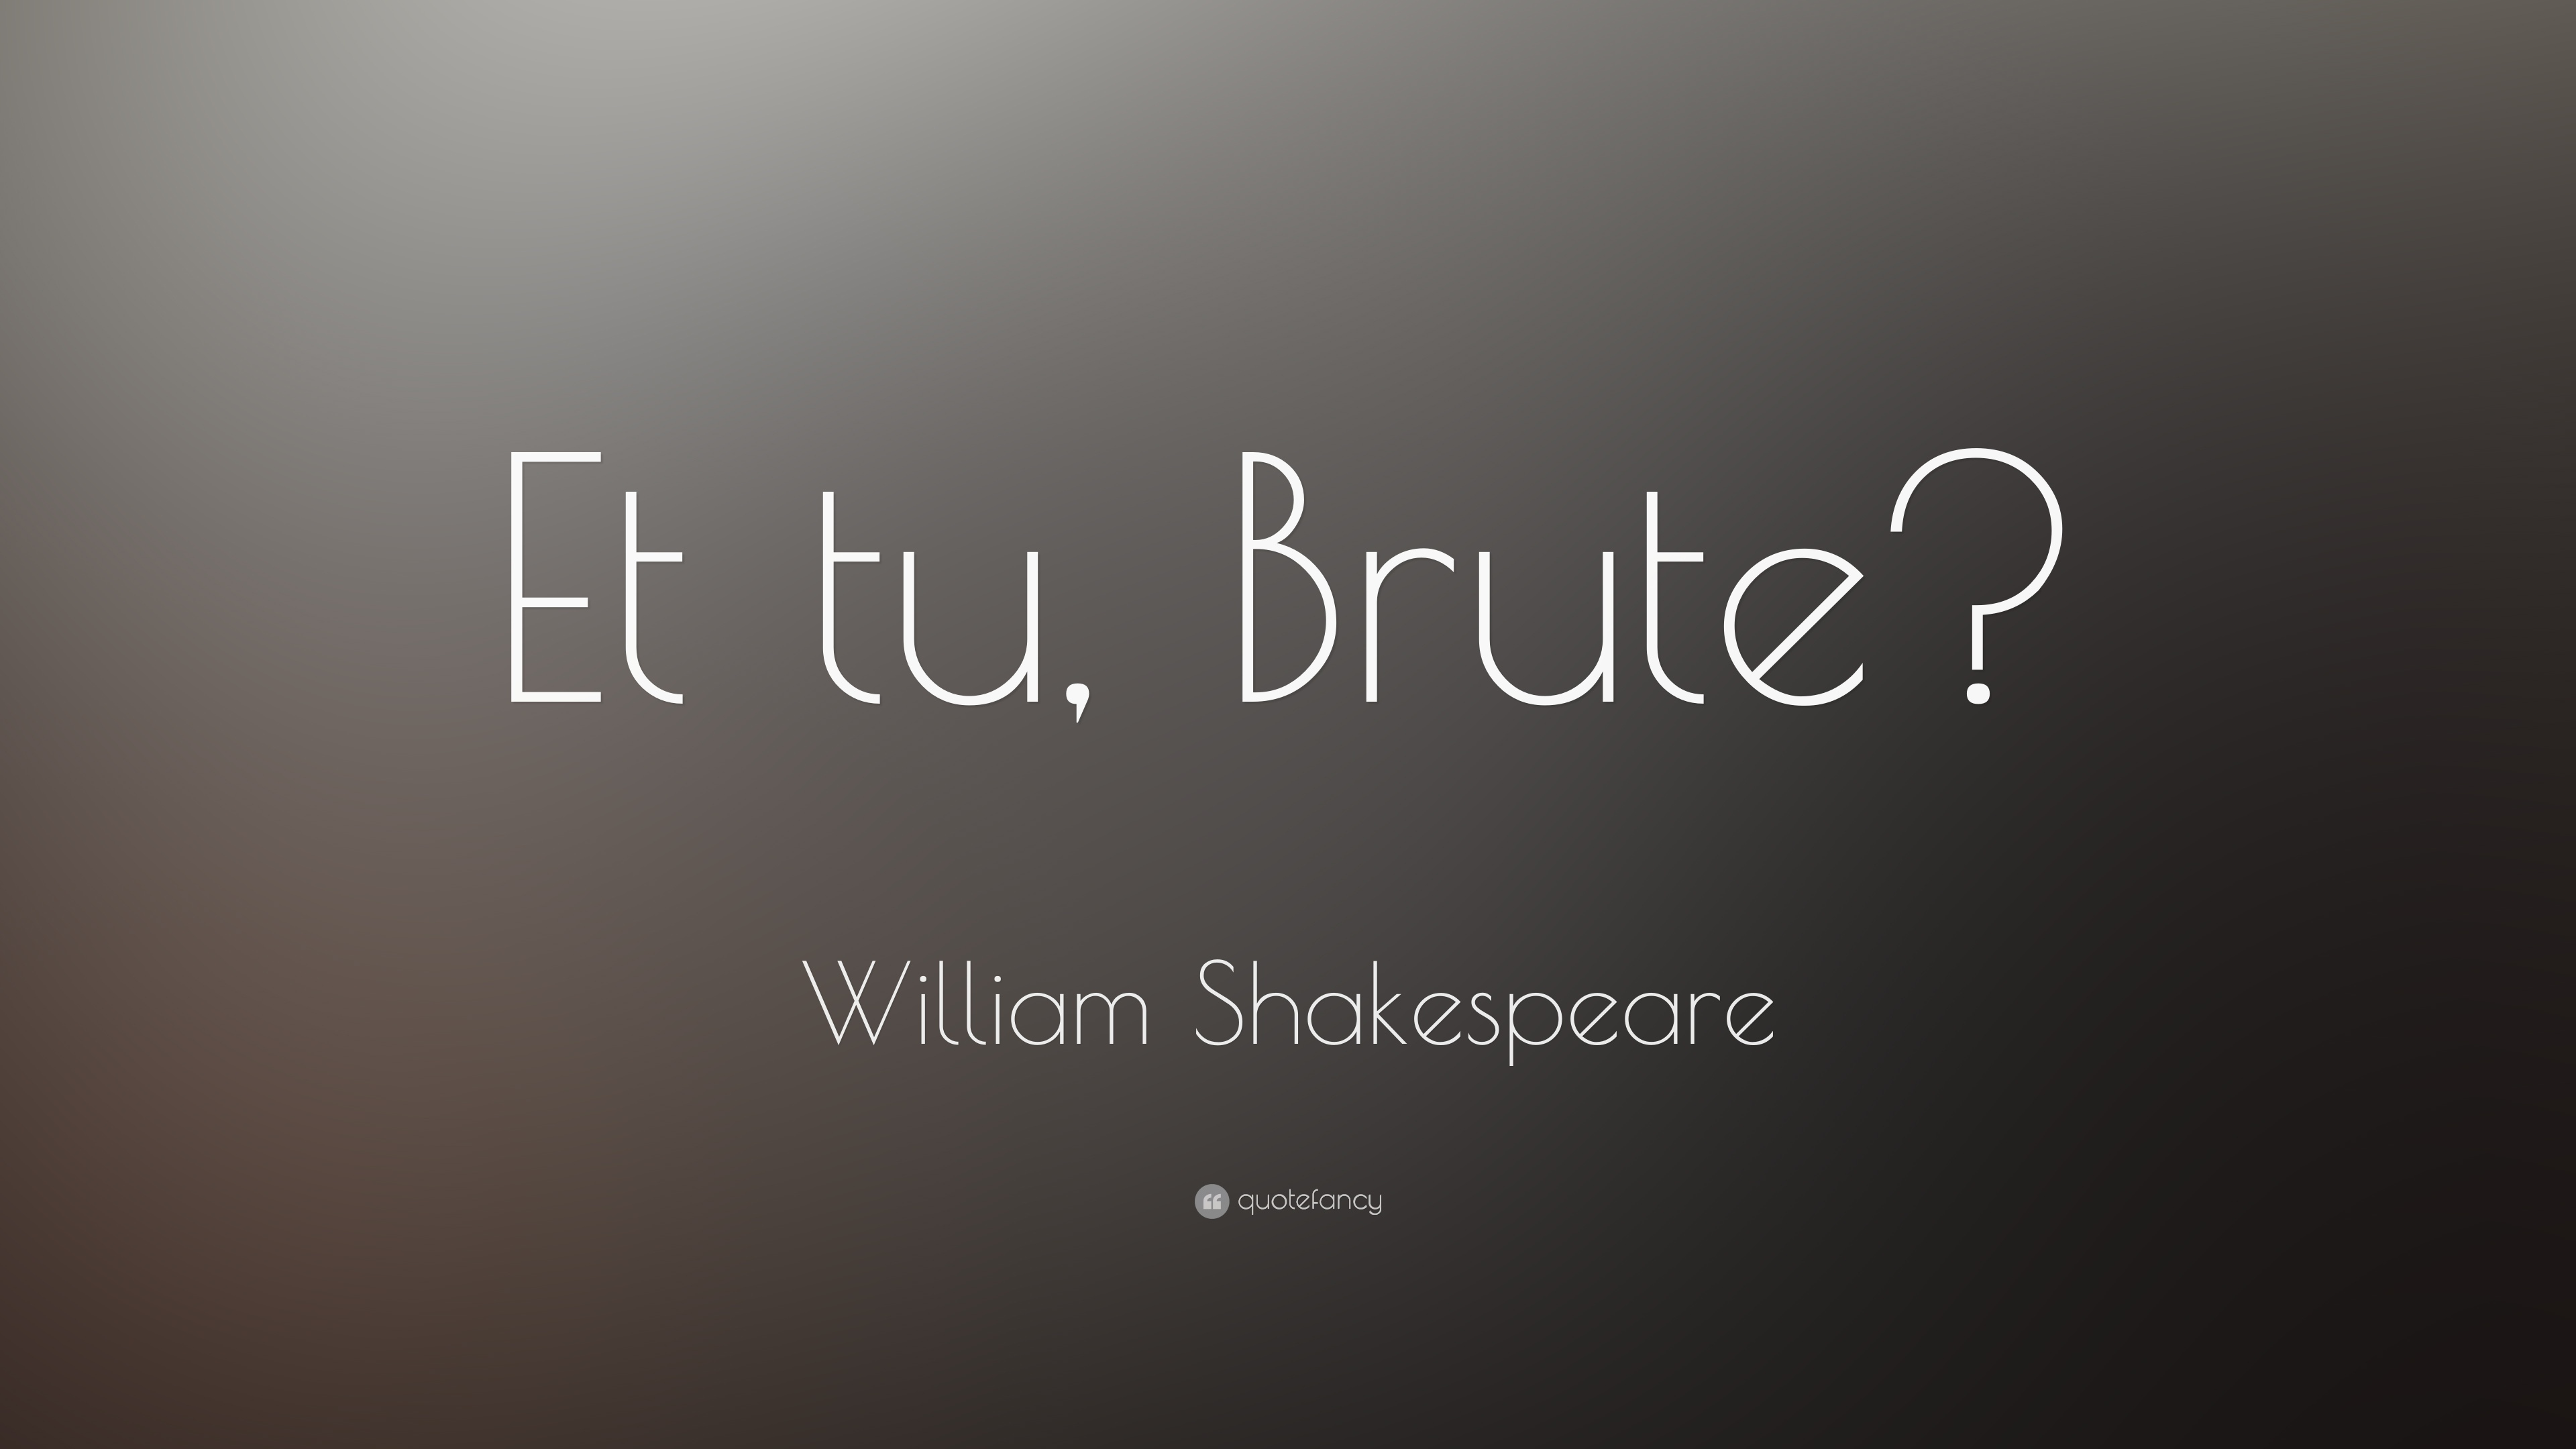 shakespeare quotes used in modern movies 20 movies based on shakespeare plays starting with shakespeare in the movies according to tradition as far as quotes.